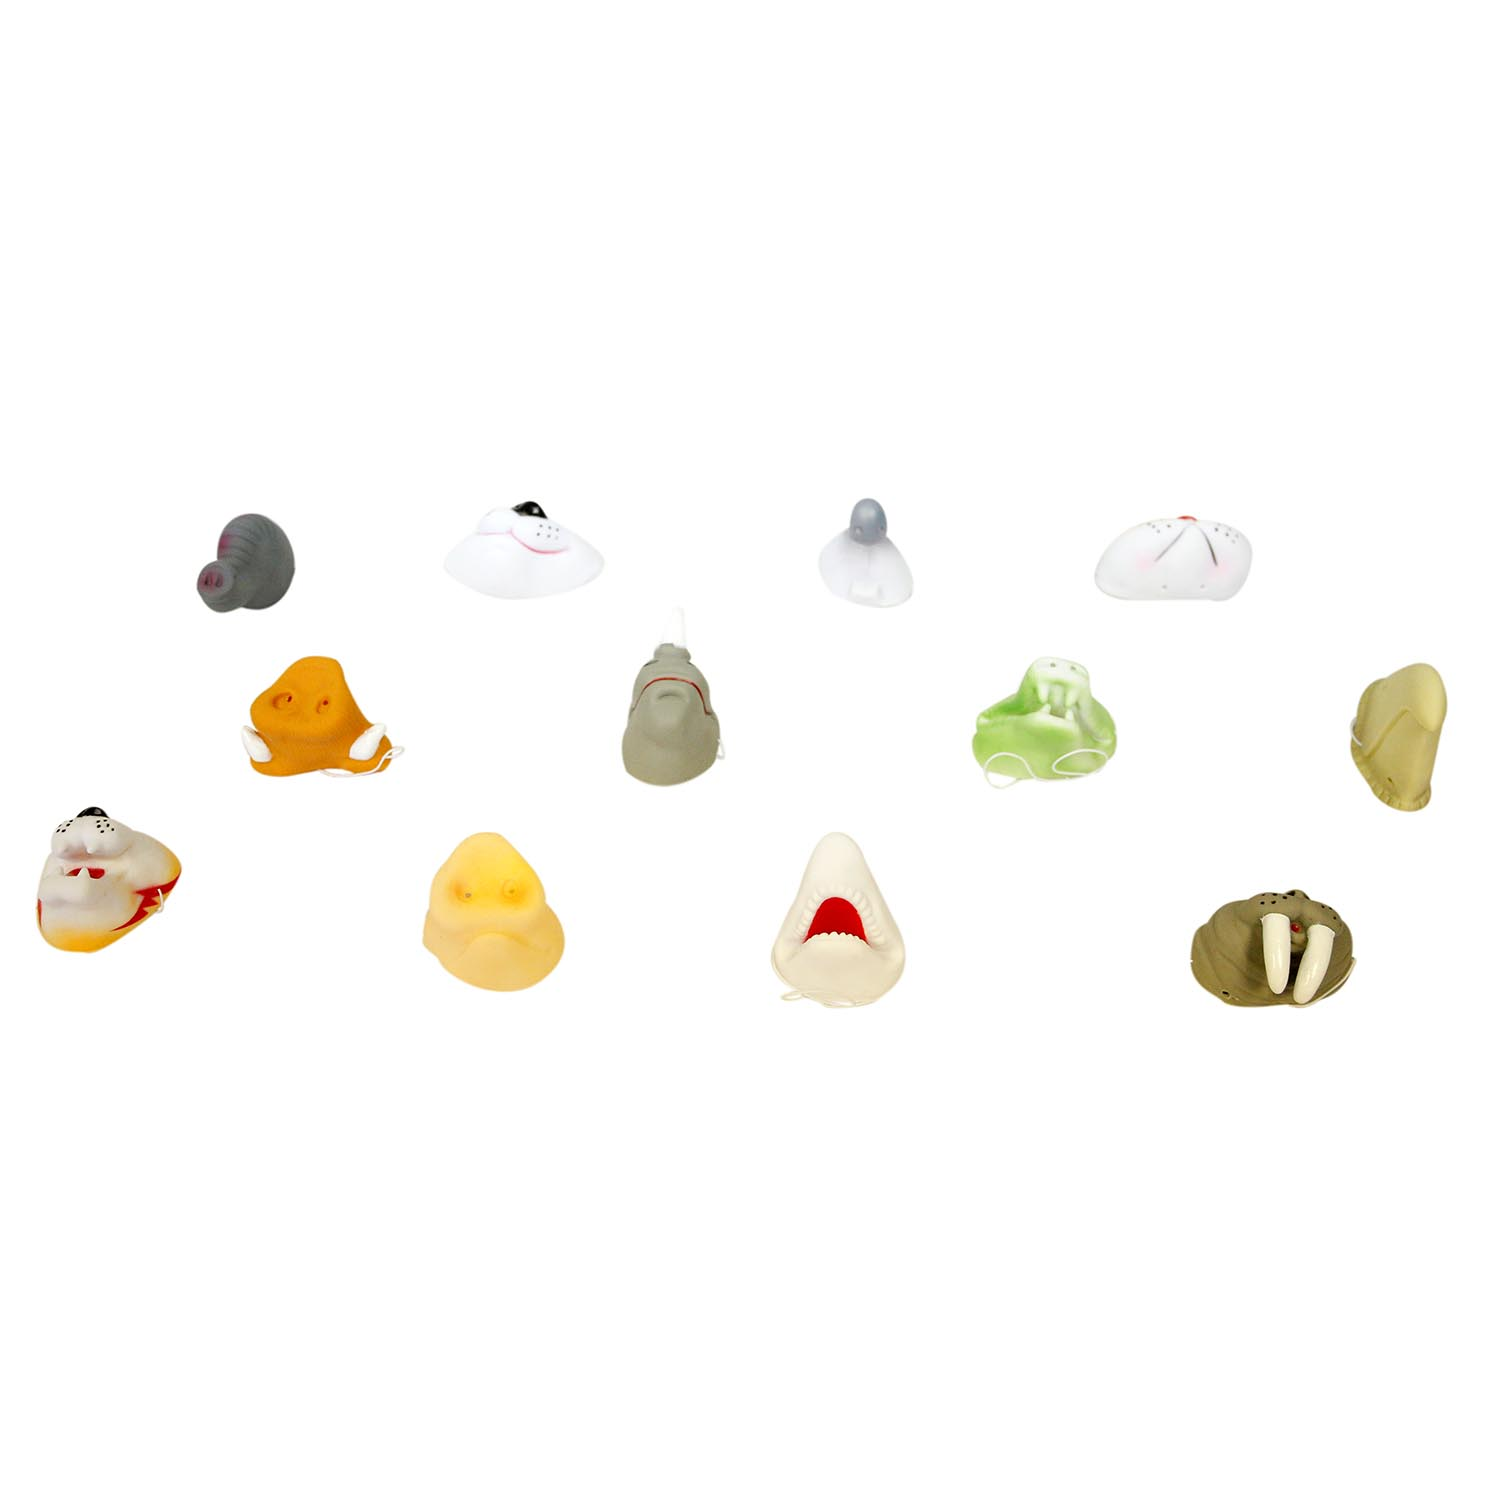 Assorted Animal Noses 878-1004